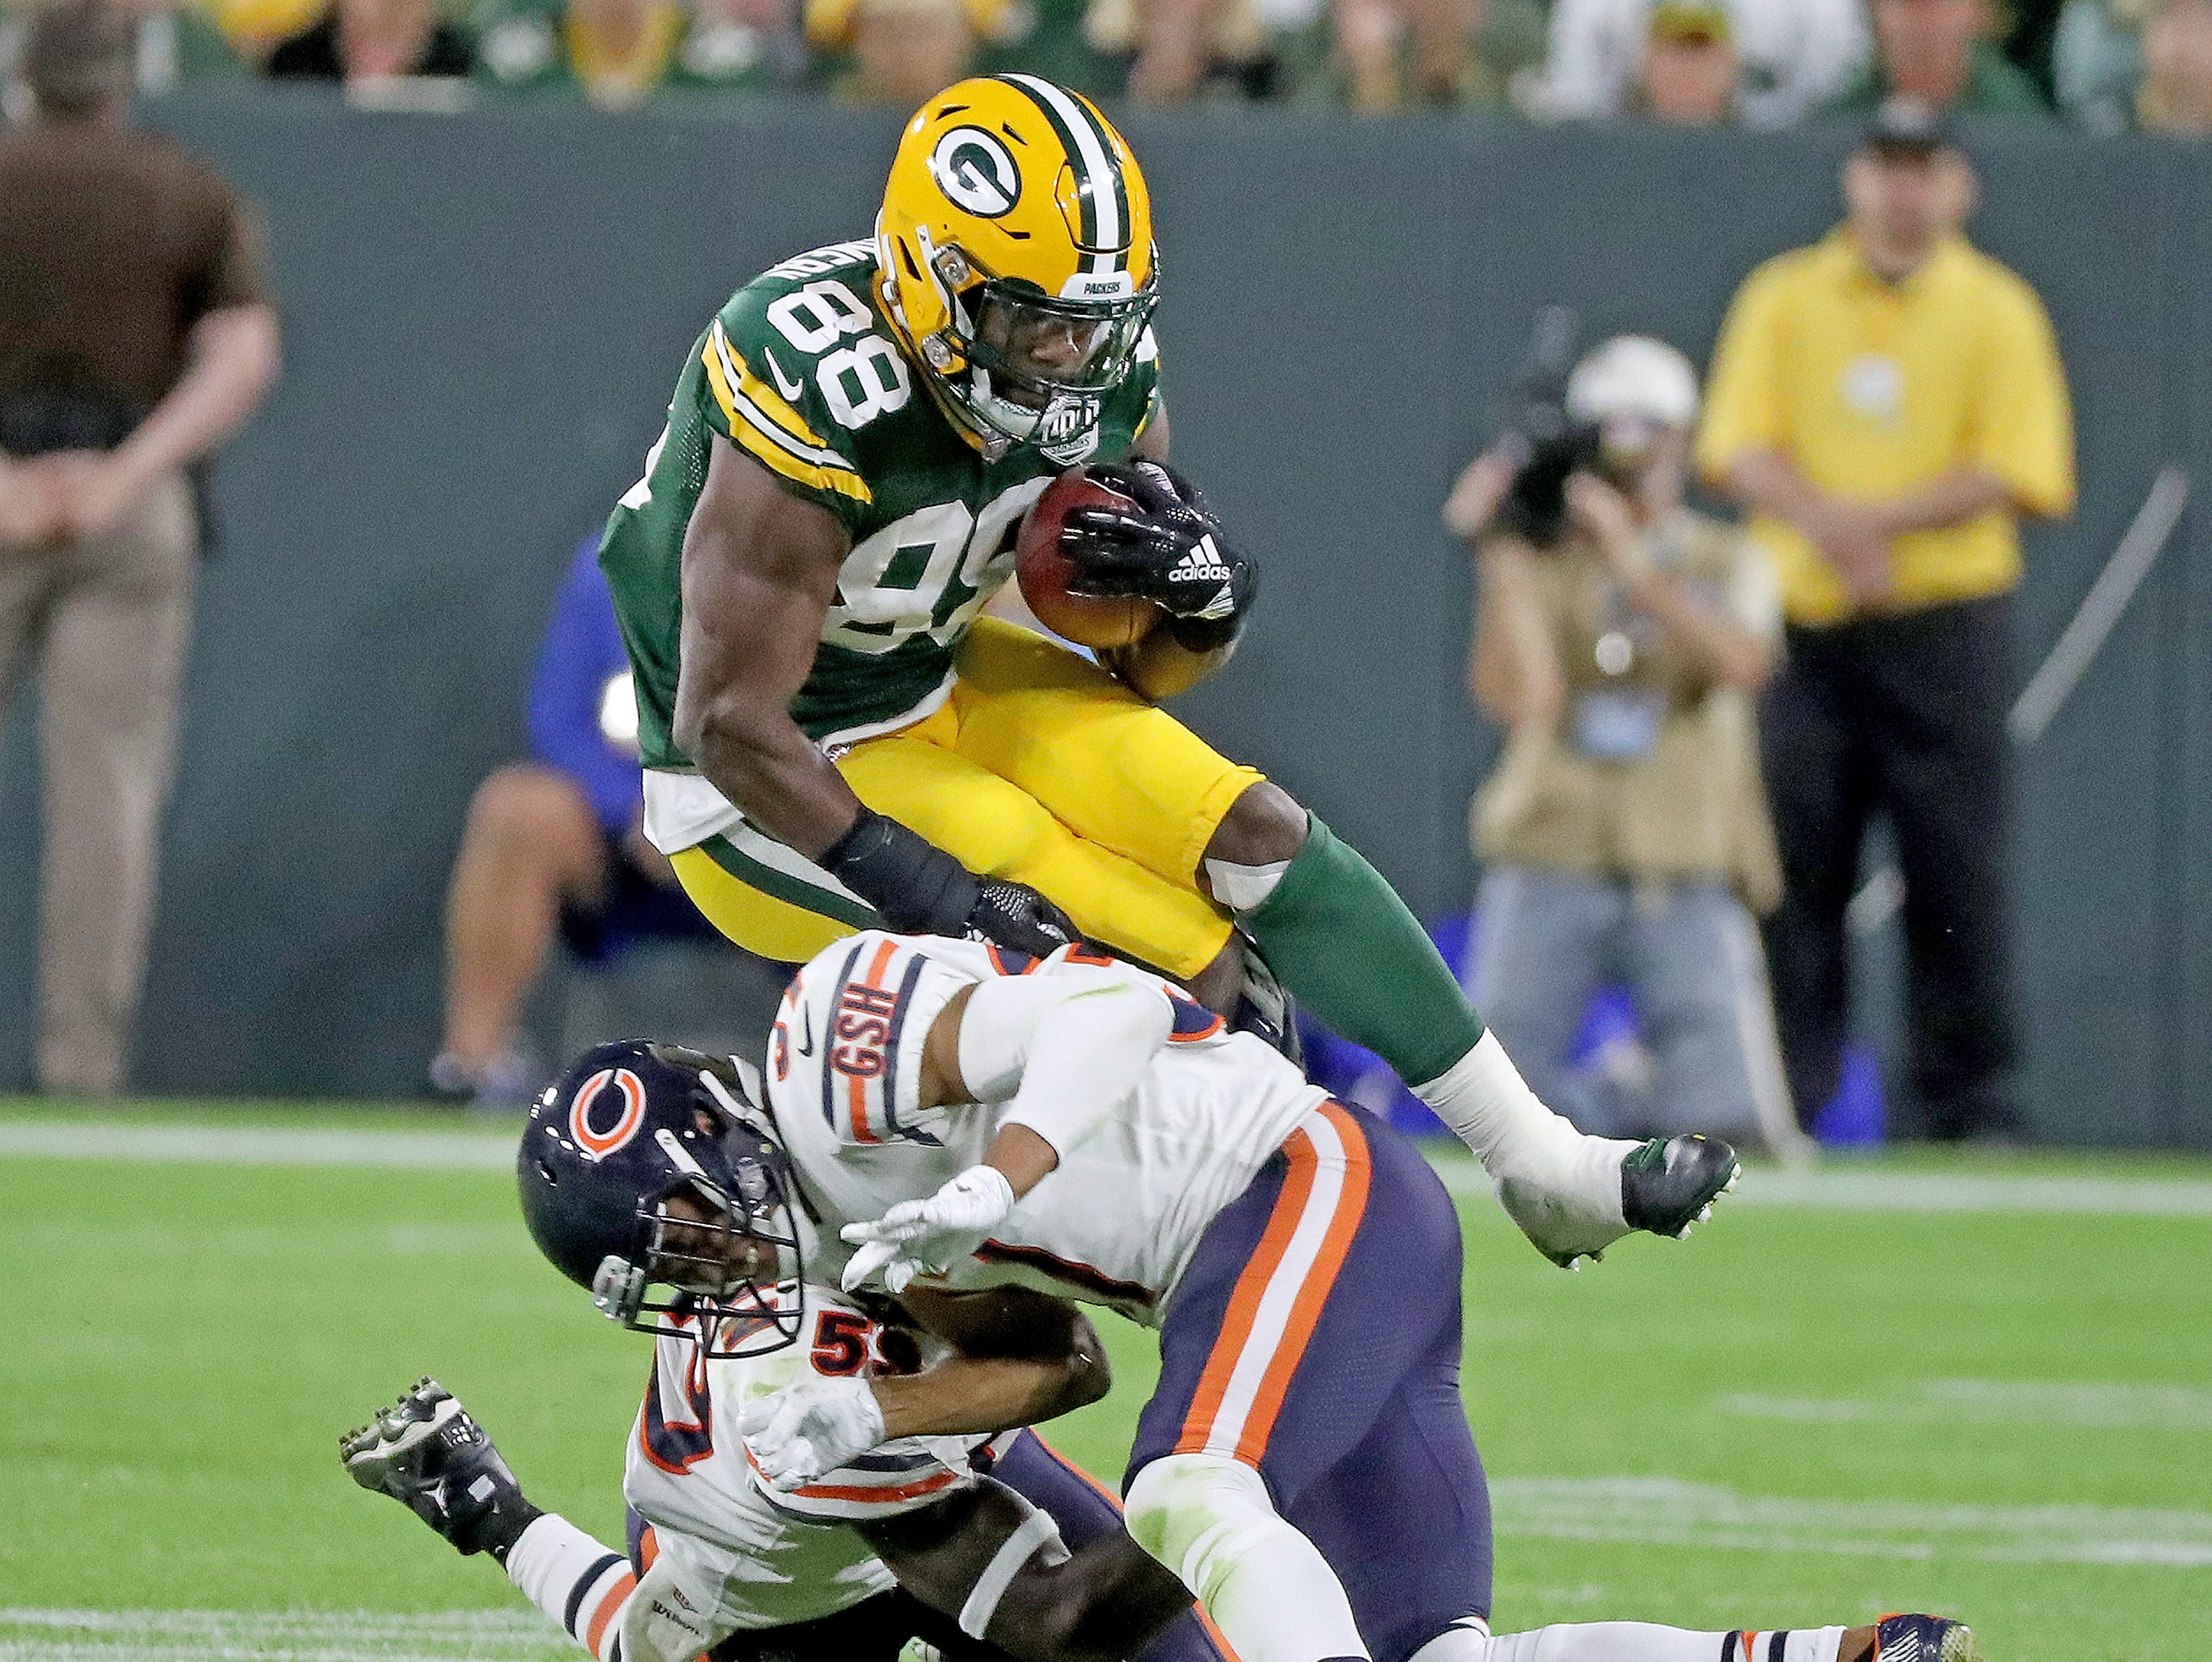 Green Bay Packers running back Ty Montgomery (88) leaps tacklers against the Chicago Bears Sunday, September 9, 2018 at Lambeau Field in Green Bay, Wis. Jim Matthews/USA TODAY NETWORK-Wisconsin